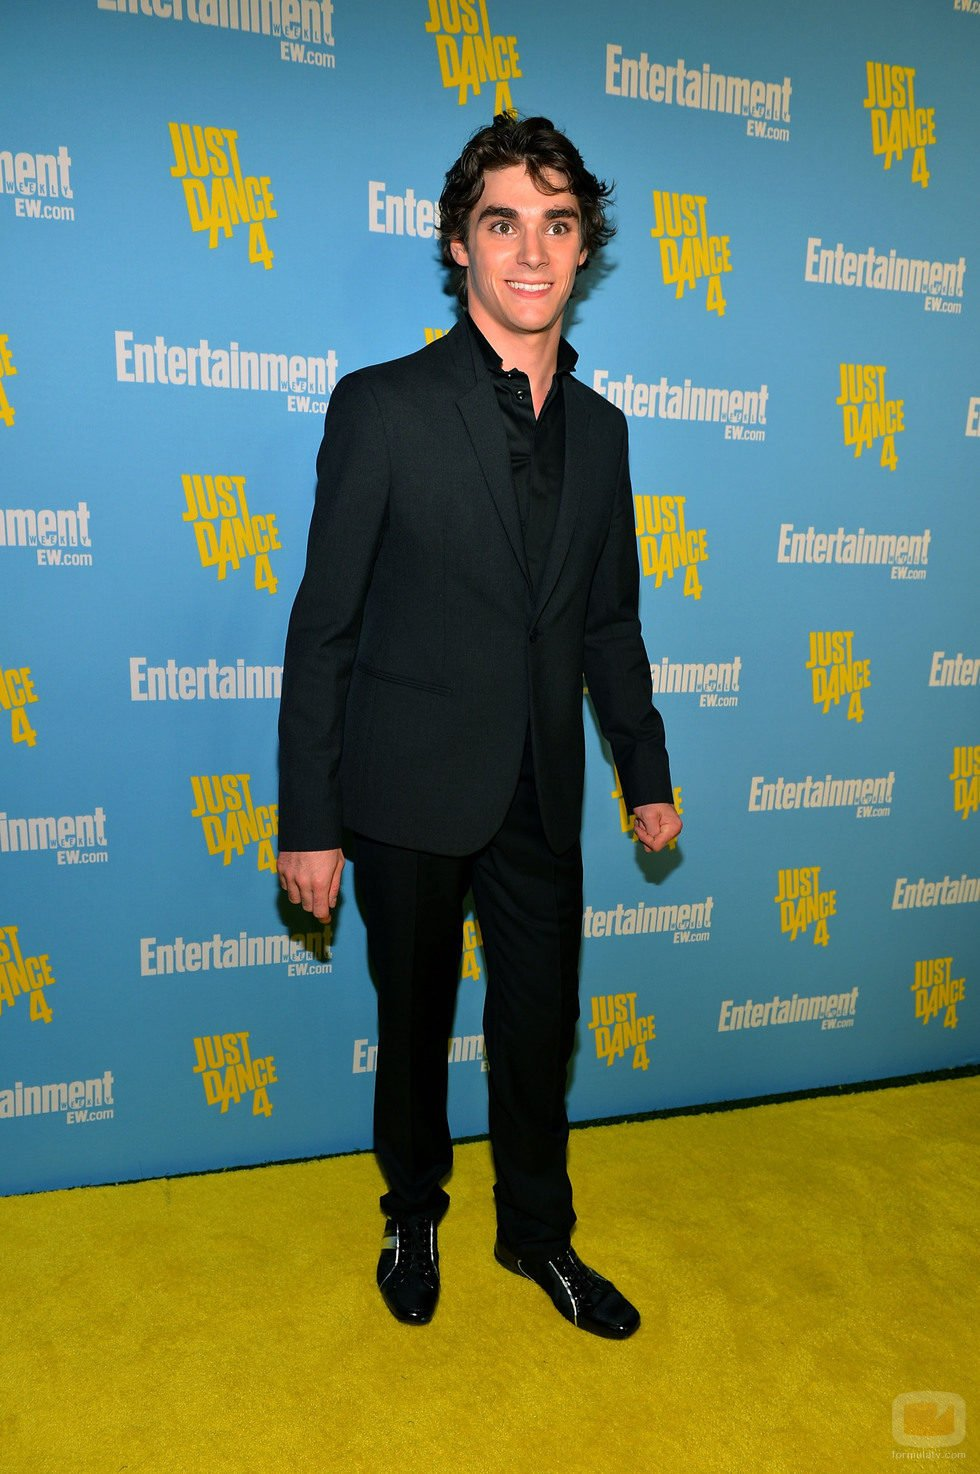 RJ Mitte de 'Breaking Bad' en la Comic-Con 2012